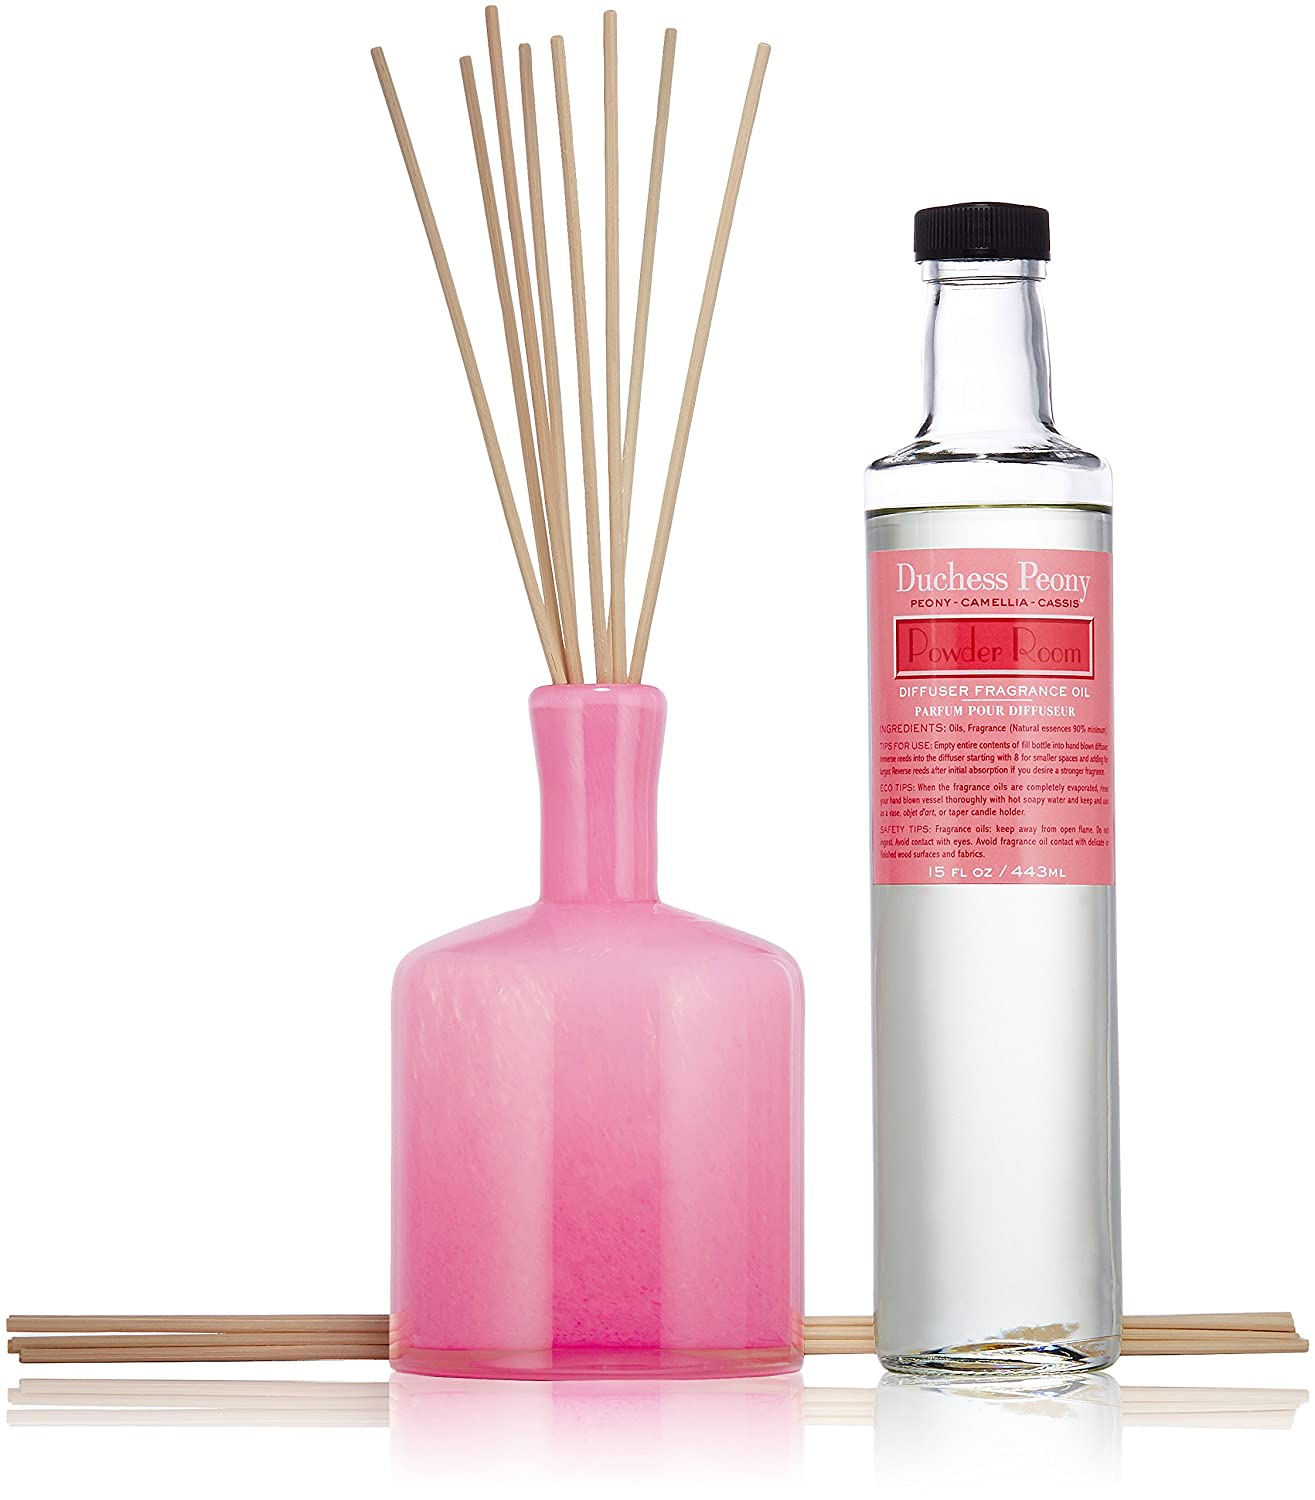 LAFCO New York Signature Scented Reed Diffuser, Duchess Peony, Powder Room  (15fl. oz)